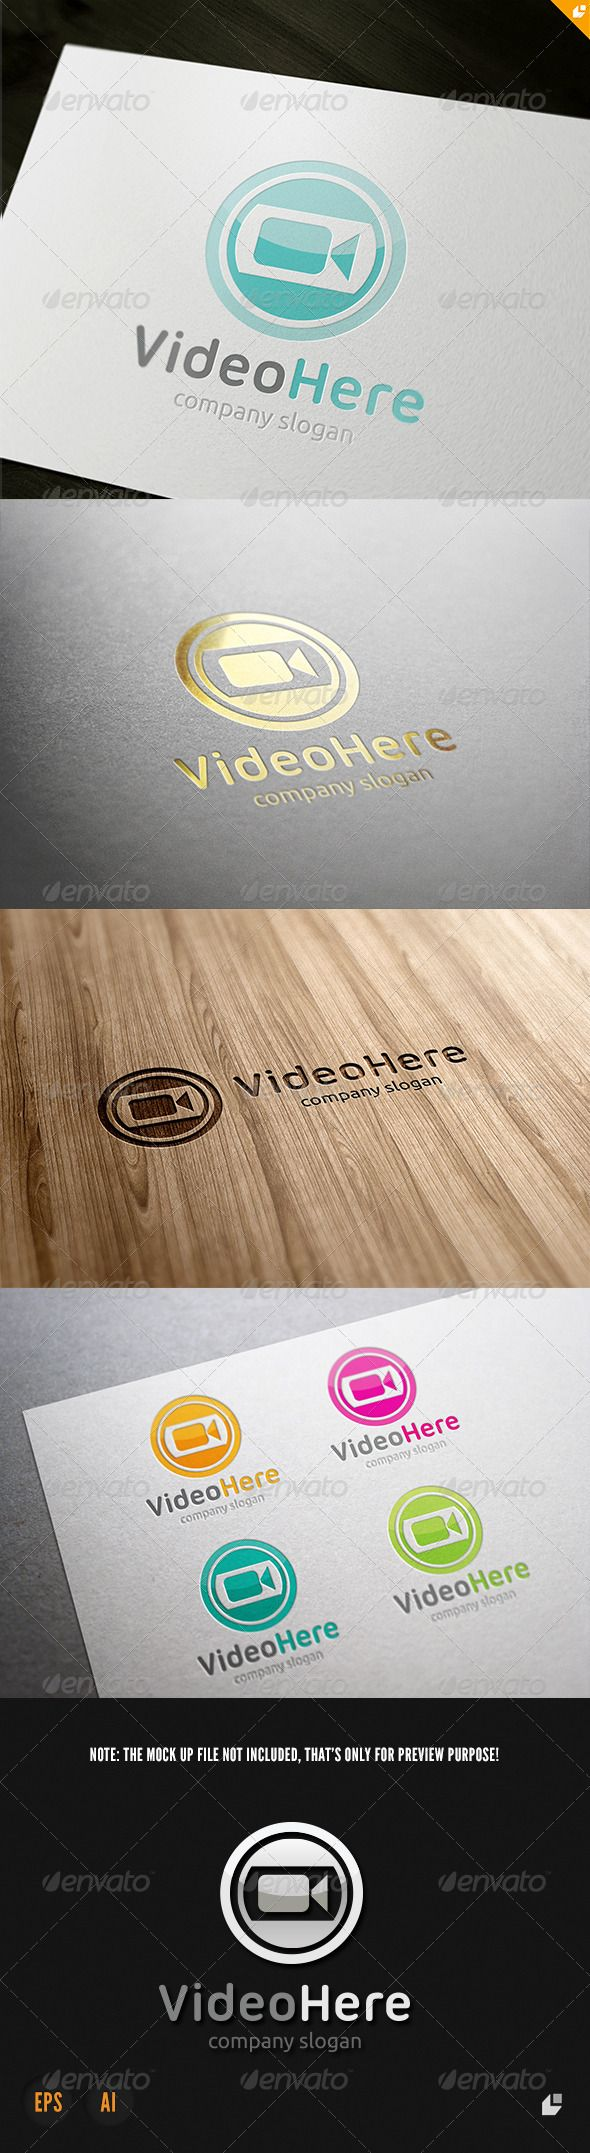 Video Here Logo — Vector EPS media audio • Available